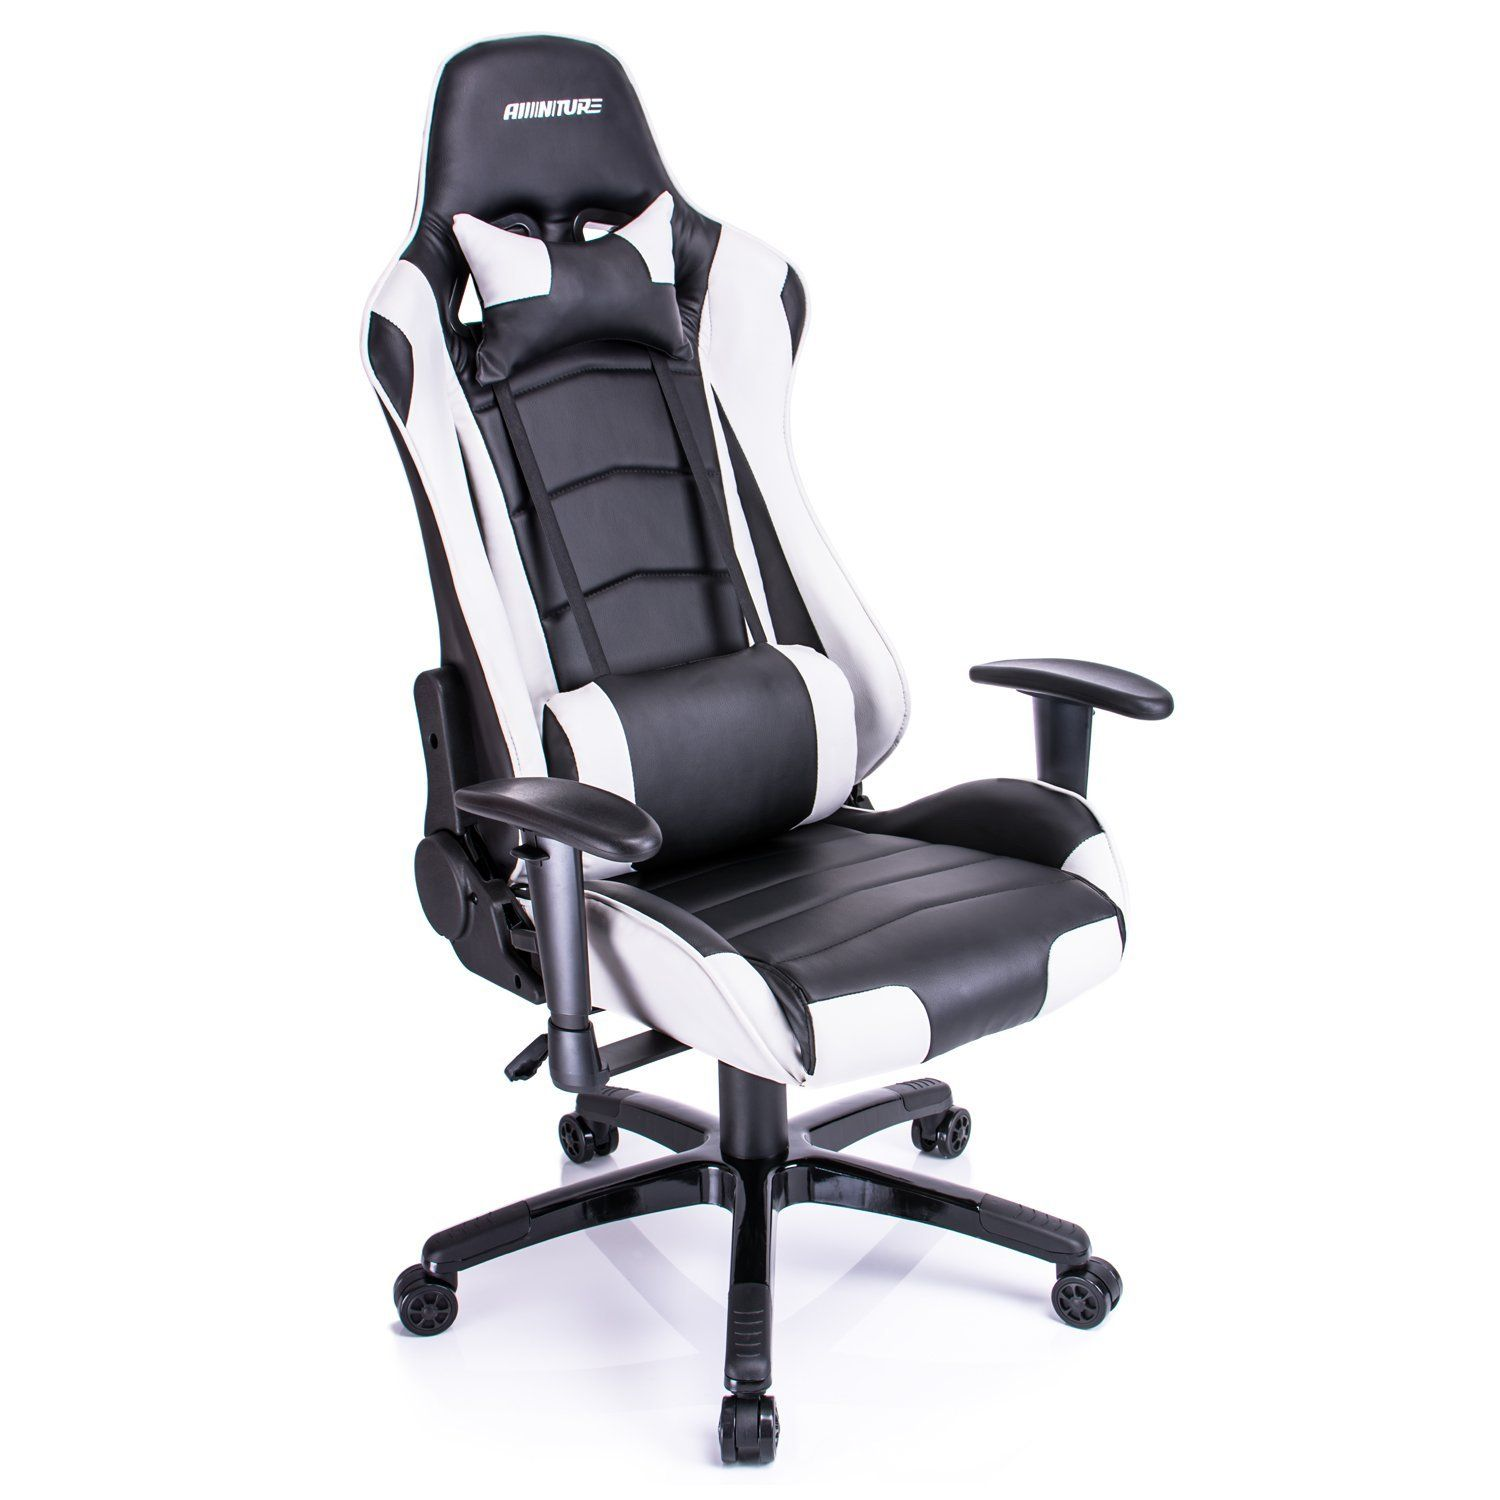 gaming chair amazon black outdoor rocking chairs canada com aminitrue high back racing style adjustable white kitchen dining